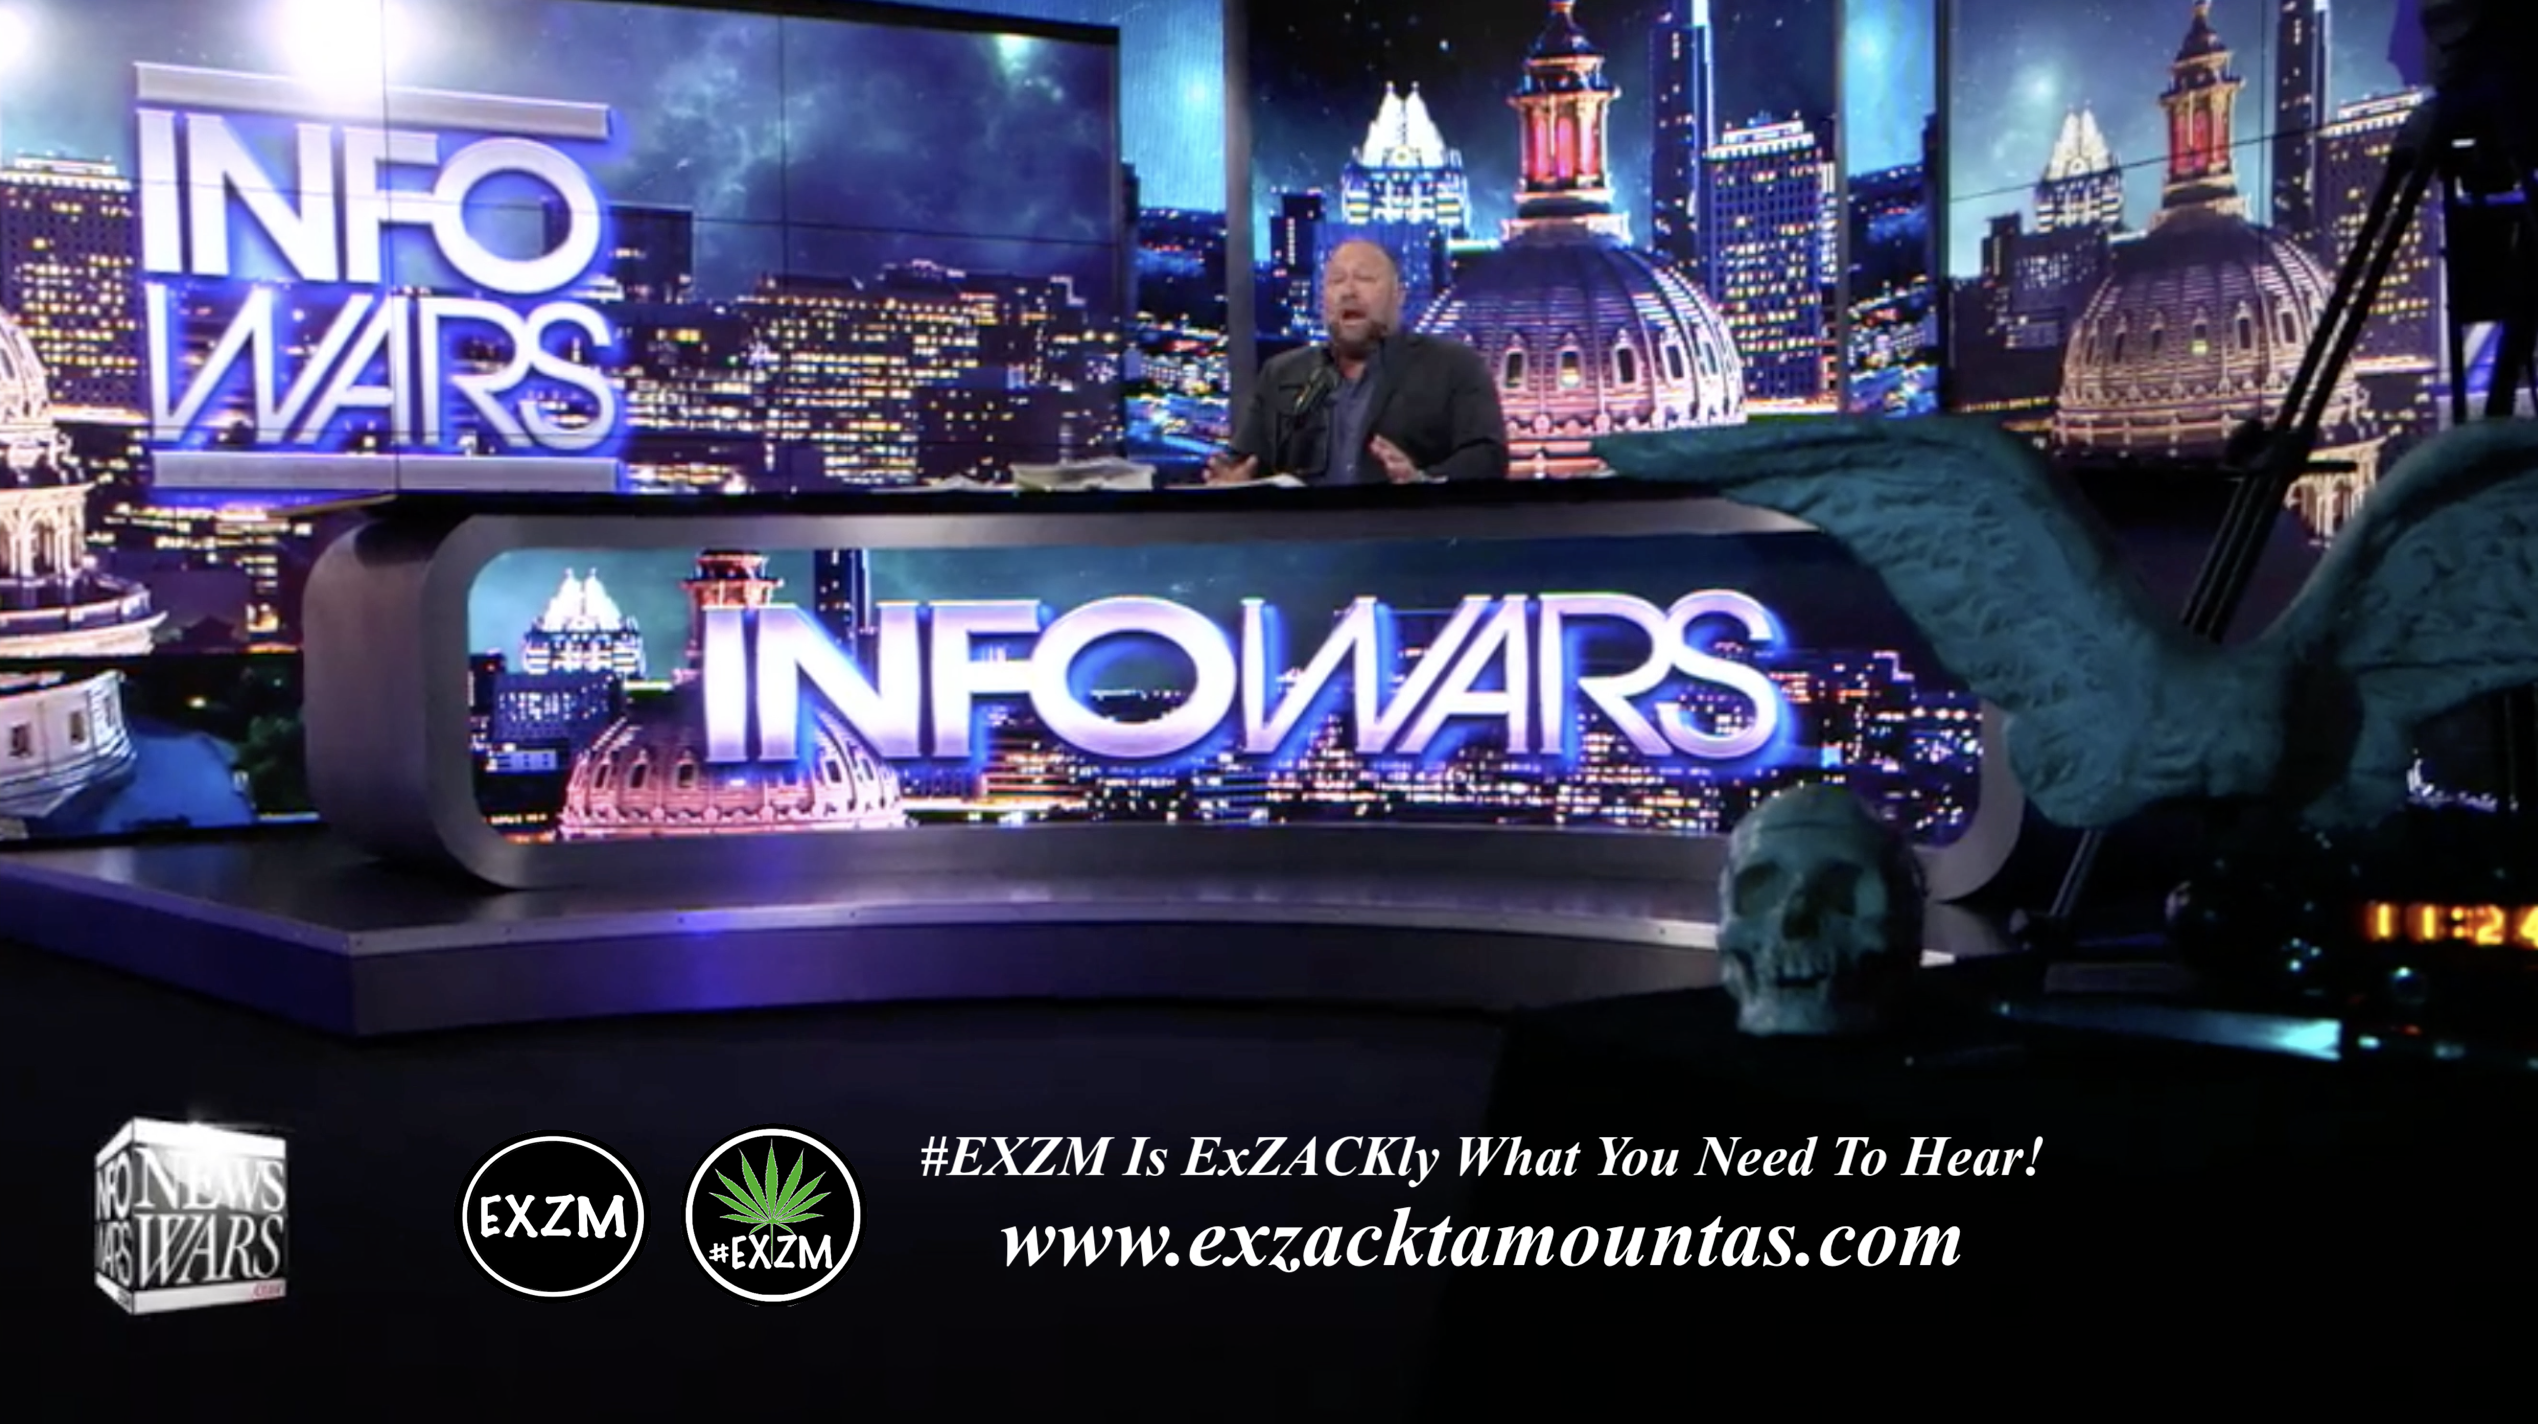 Alex Jones Live Infowars Studio EXZM Zack Mount May 3rd 2021 copy